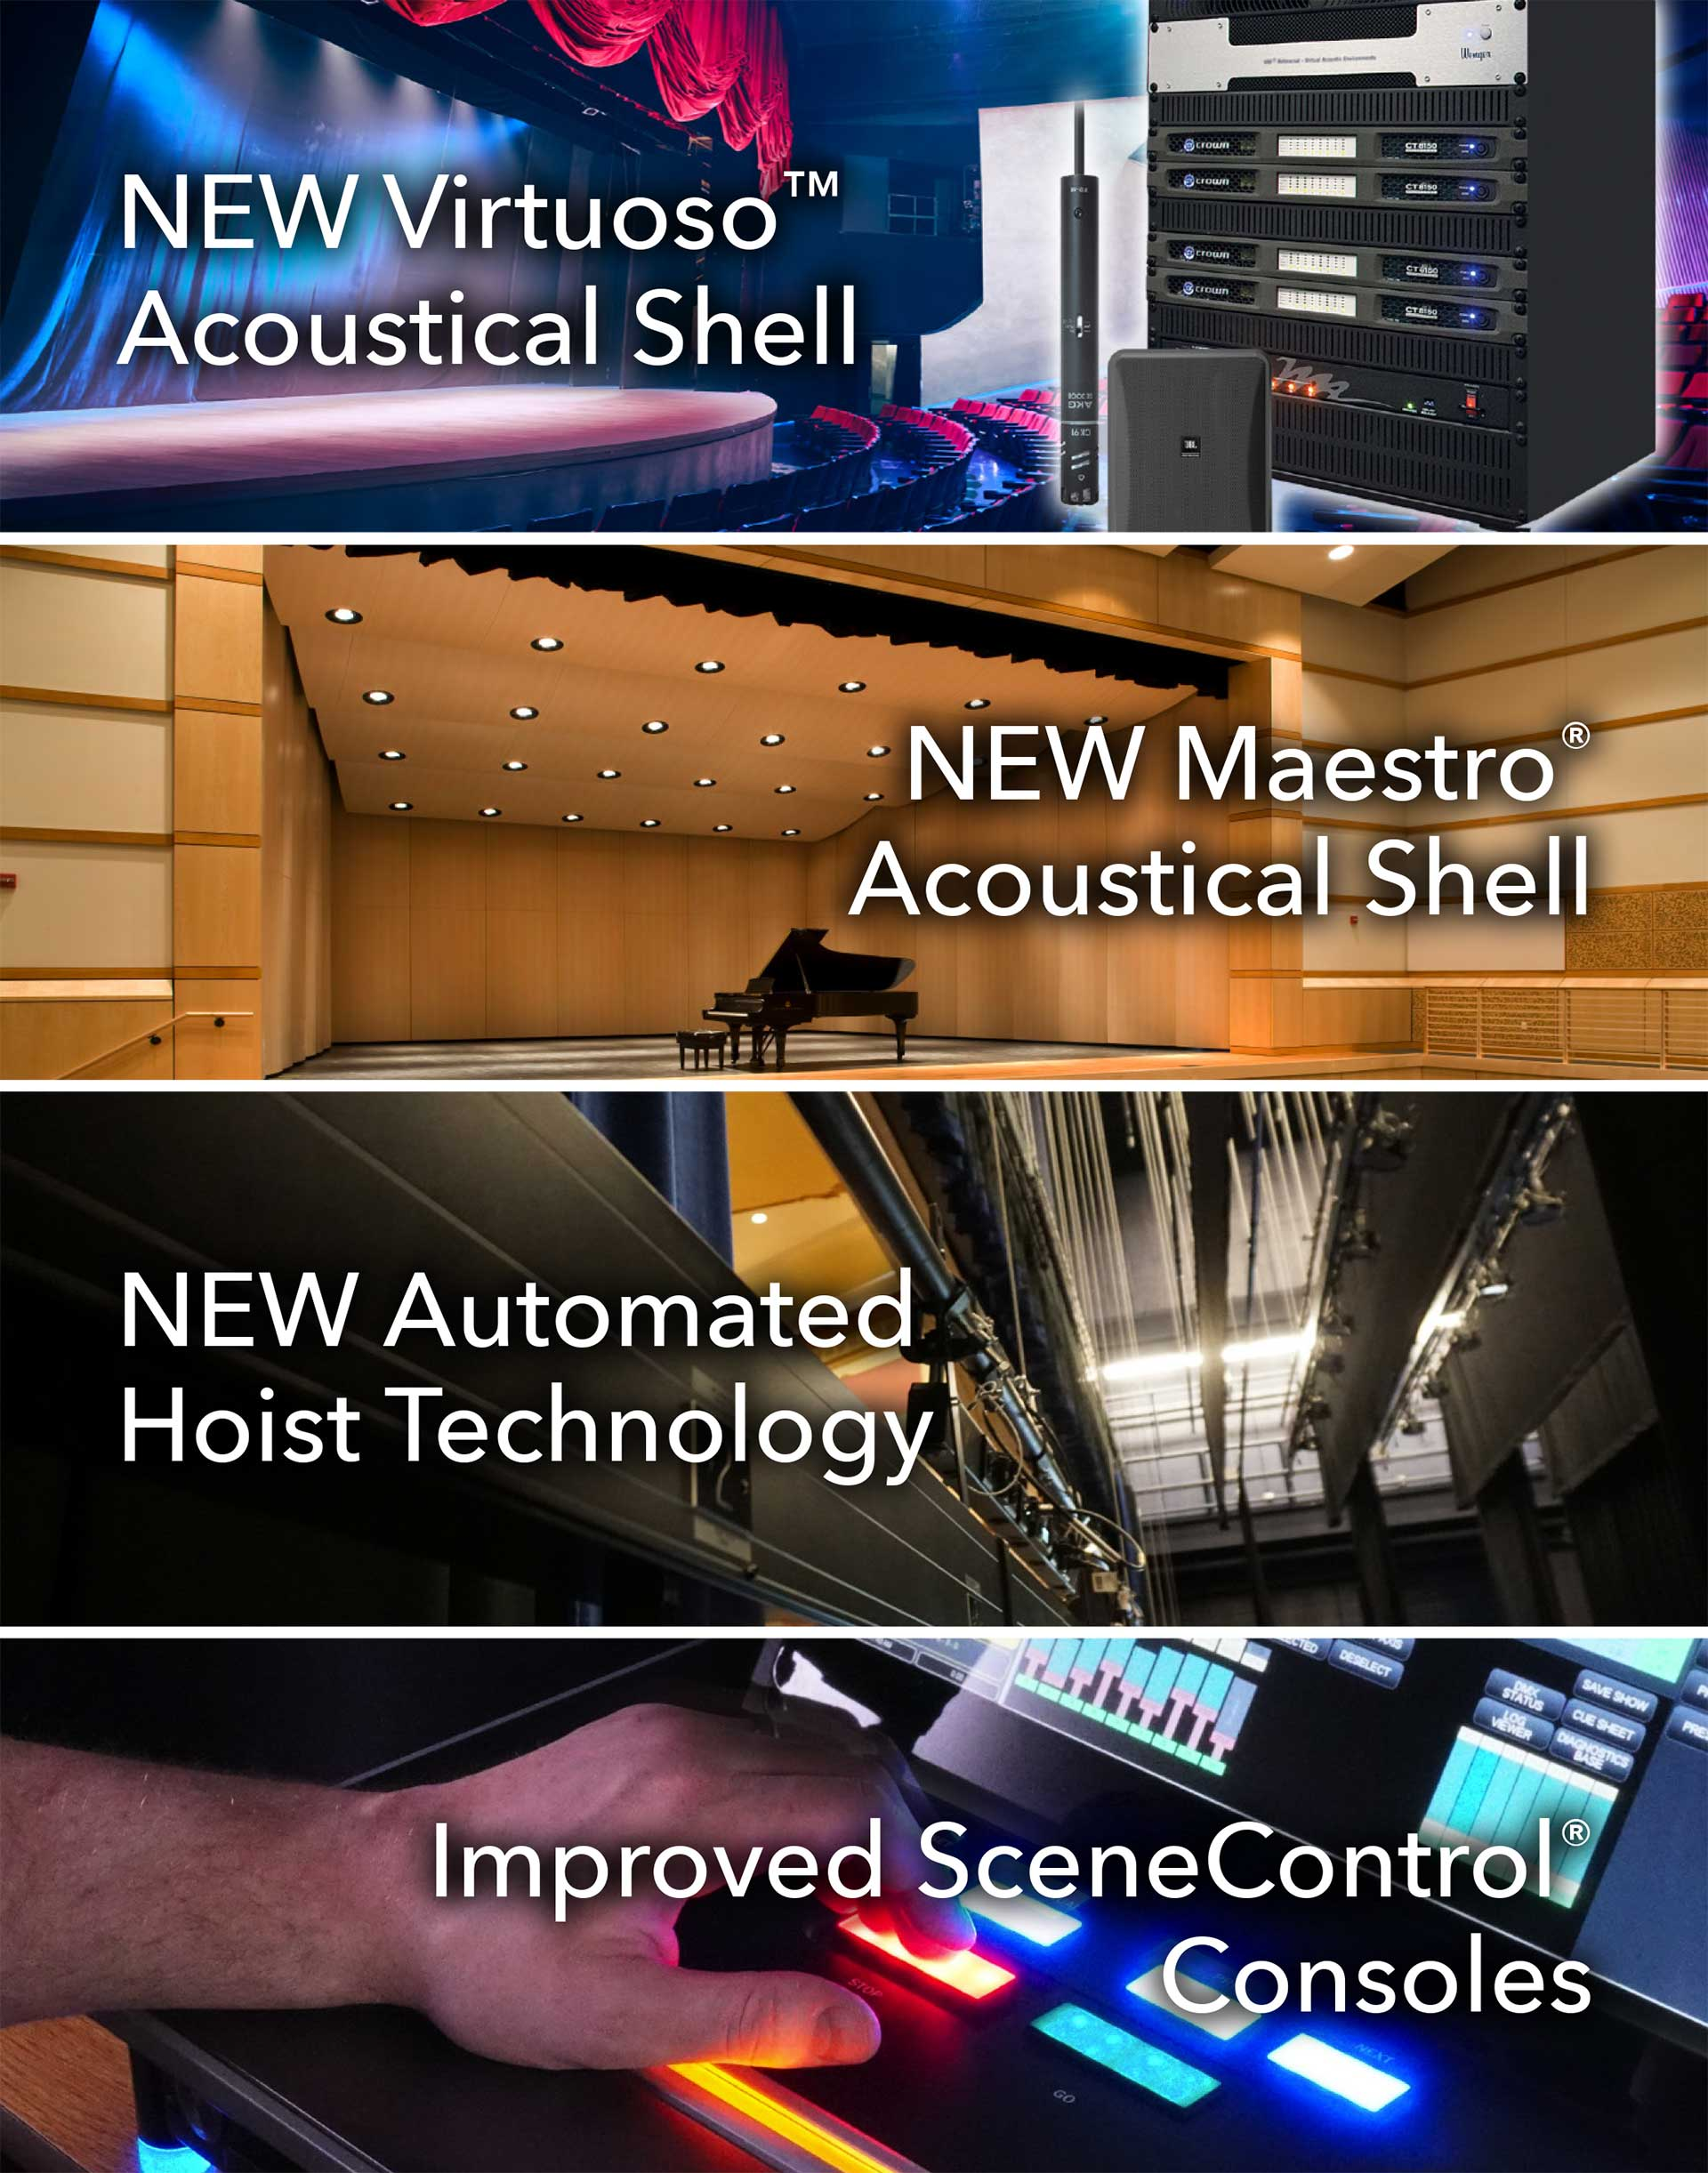 NEW Virtuoso™ Acoustical Shell | NEW Maestro® Acoustical Shell | NEW HELIOS Hoist | Improved SceneControl® Consoles